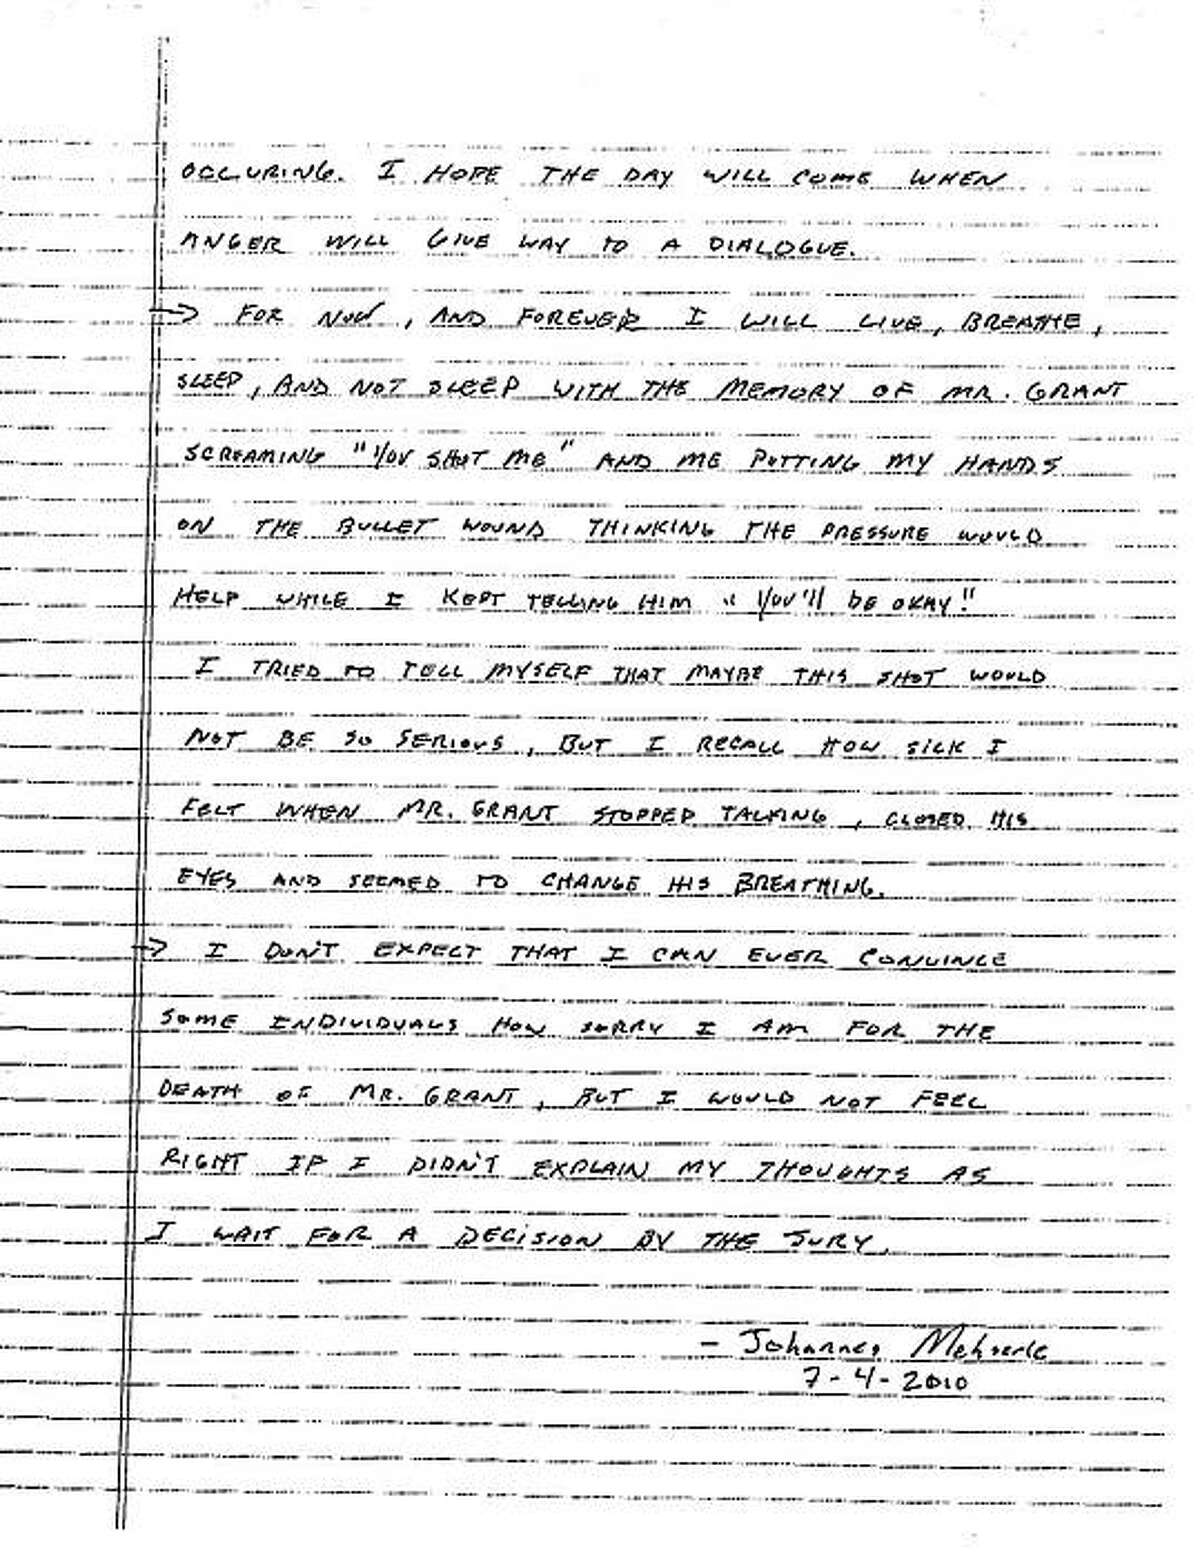 Page 2 of Johannes Mehserle's handwritten letter.